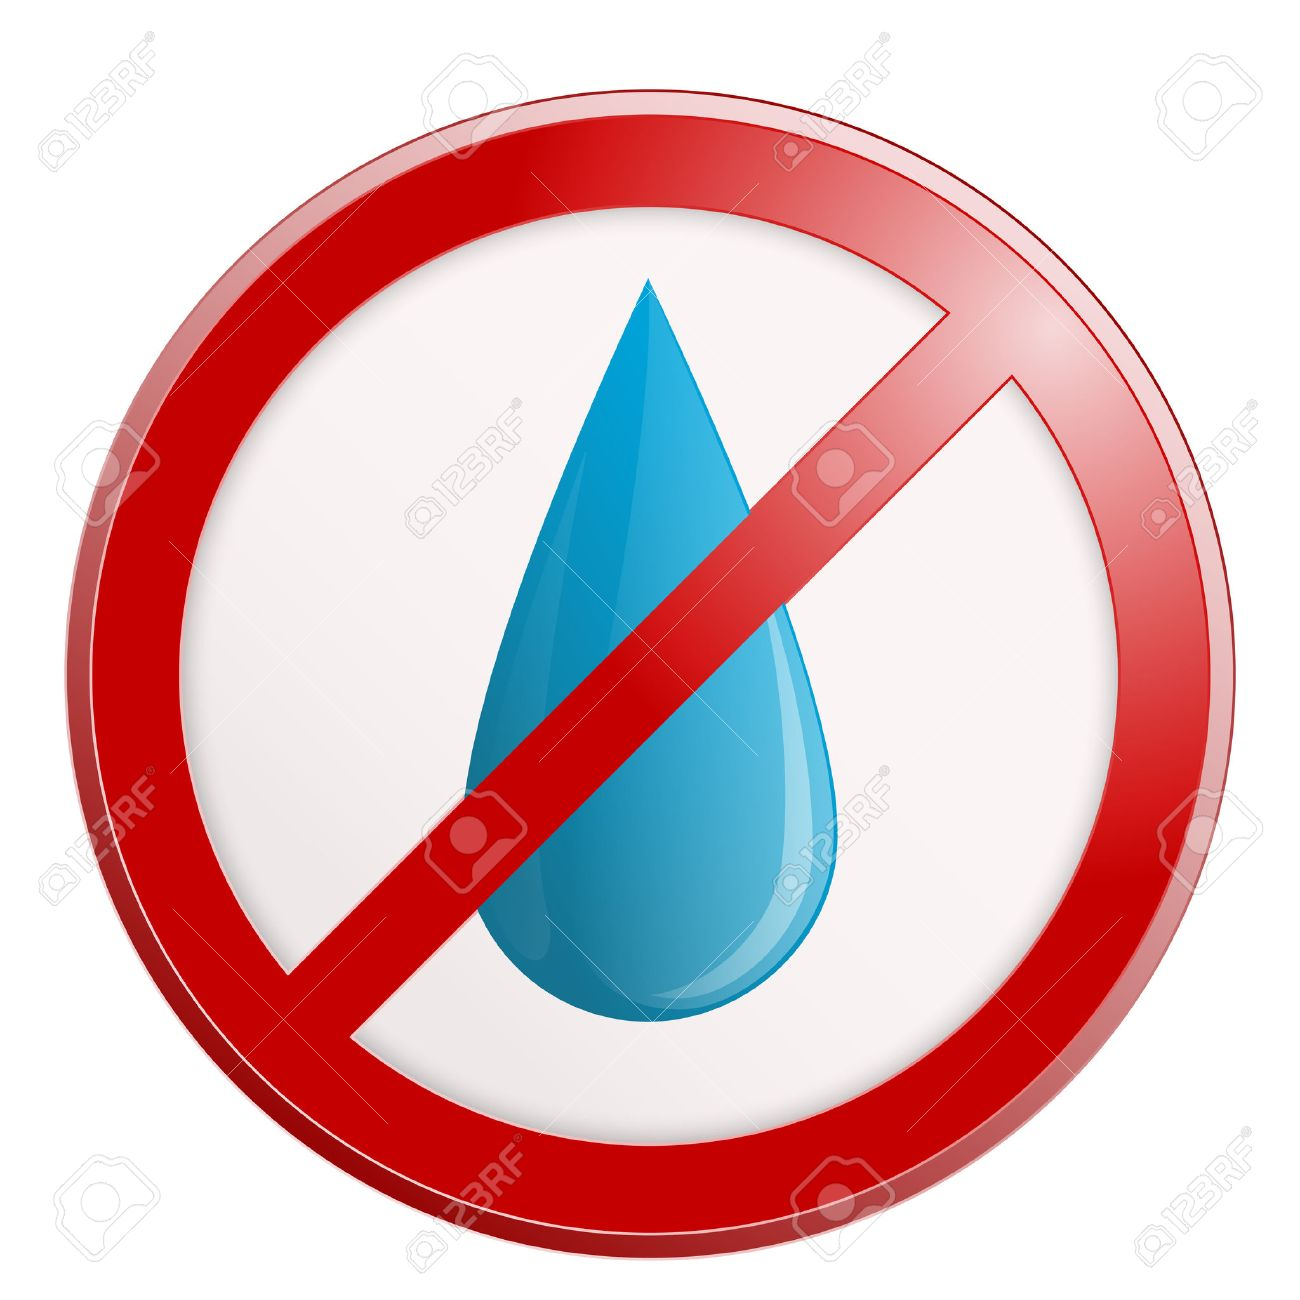 Image result for no water clipart